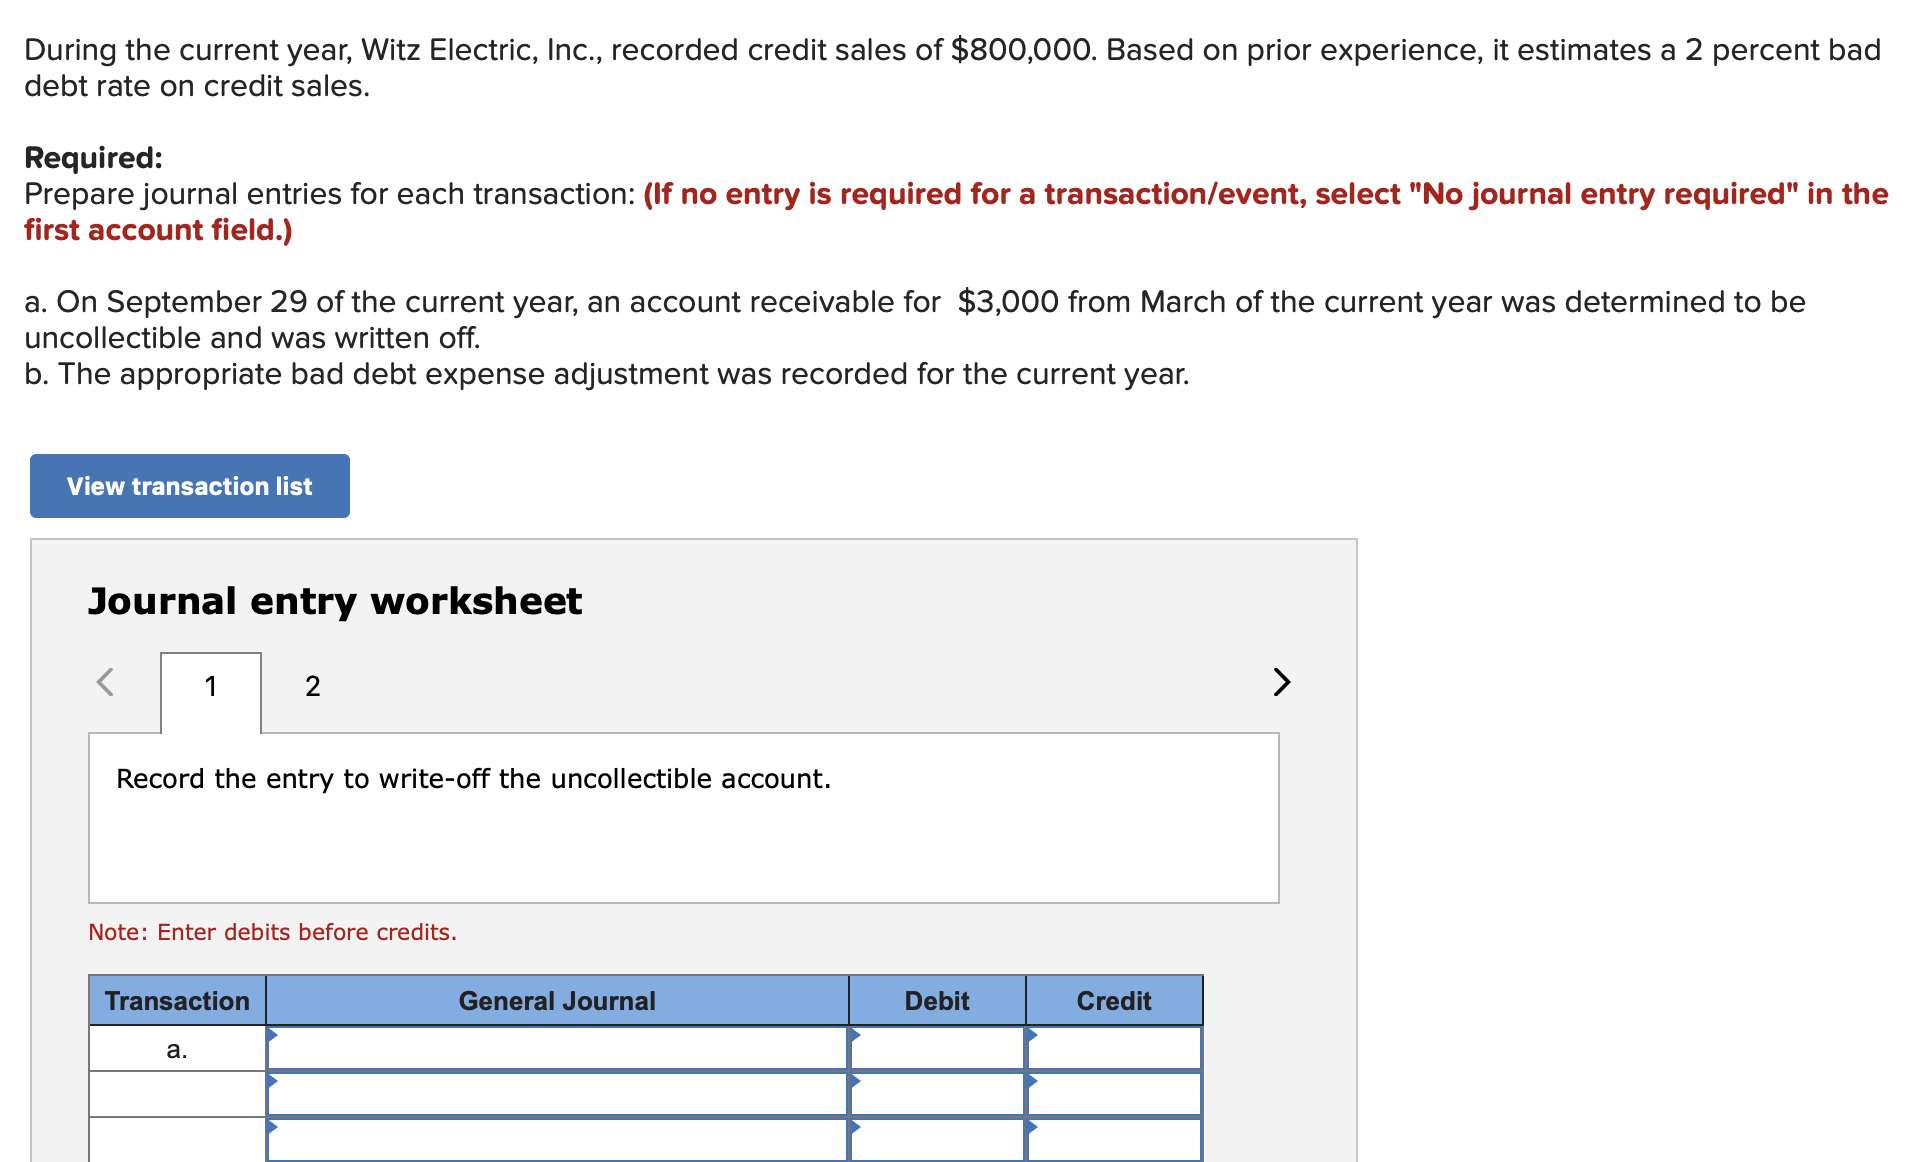 "During the current year, Witz Electric, Inc., recorded credit sales of $800,000. Based on prior experience, it estimates a 2 percent bad debt rate on credit sales. Required: Prepare journal entries for each transaction: (lf no entry is required for a transaction/event, select ""No journal entry required"" in the first account field.) a. On September 29 of the current year, an account receivable for $3,000 from March of the current year was determined to be uncollectible and was written off. b. The appropriate bad debt expense adjustment was recorded for the current year. View transaction list Journal entry worksheet 2 Record the entry to write-off the uncollectible account Note: Enter debits before credits. Debit Transaction General Journal Credit а. A"